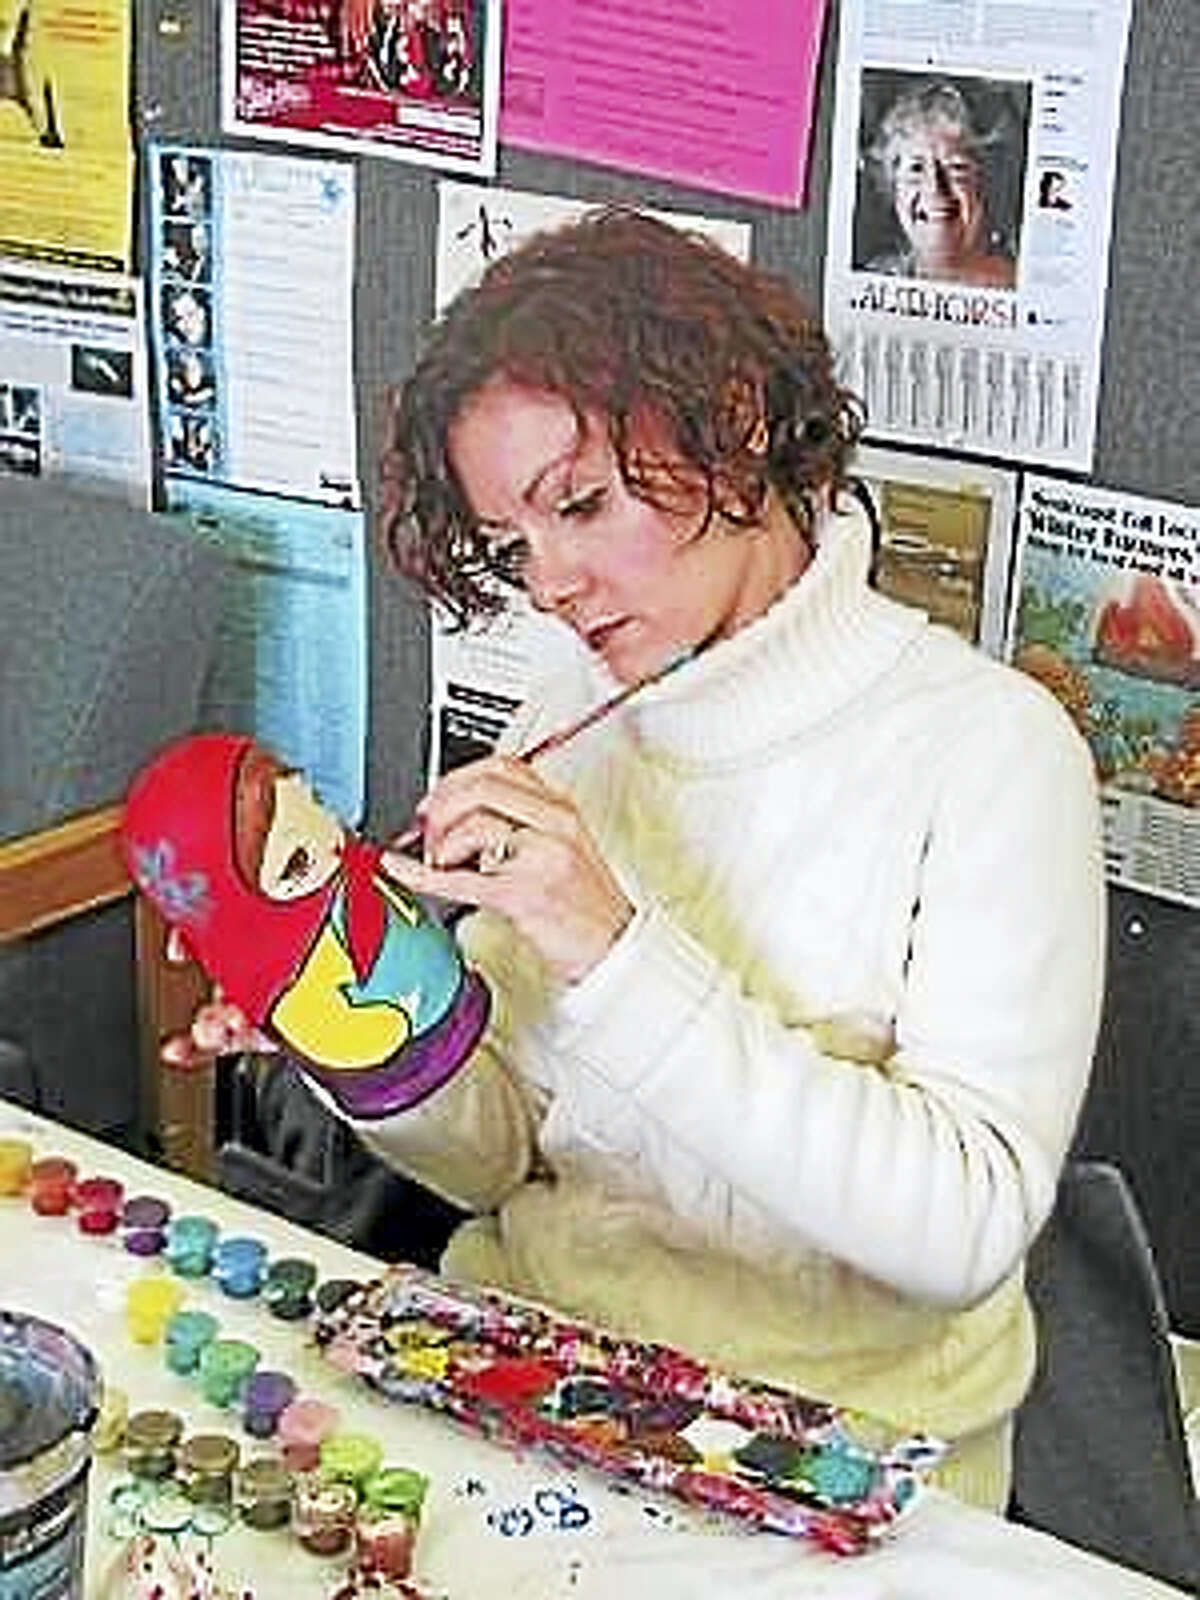 A Matryoshka Nested Doll Painting workshop with storytelling will be held on Saturday, April 8, 1-4 p.m., led by Marina Forbes, a traditional Russian artist and lecturer.